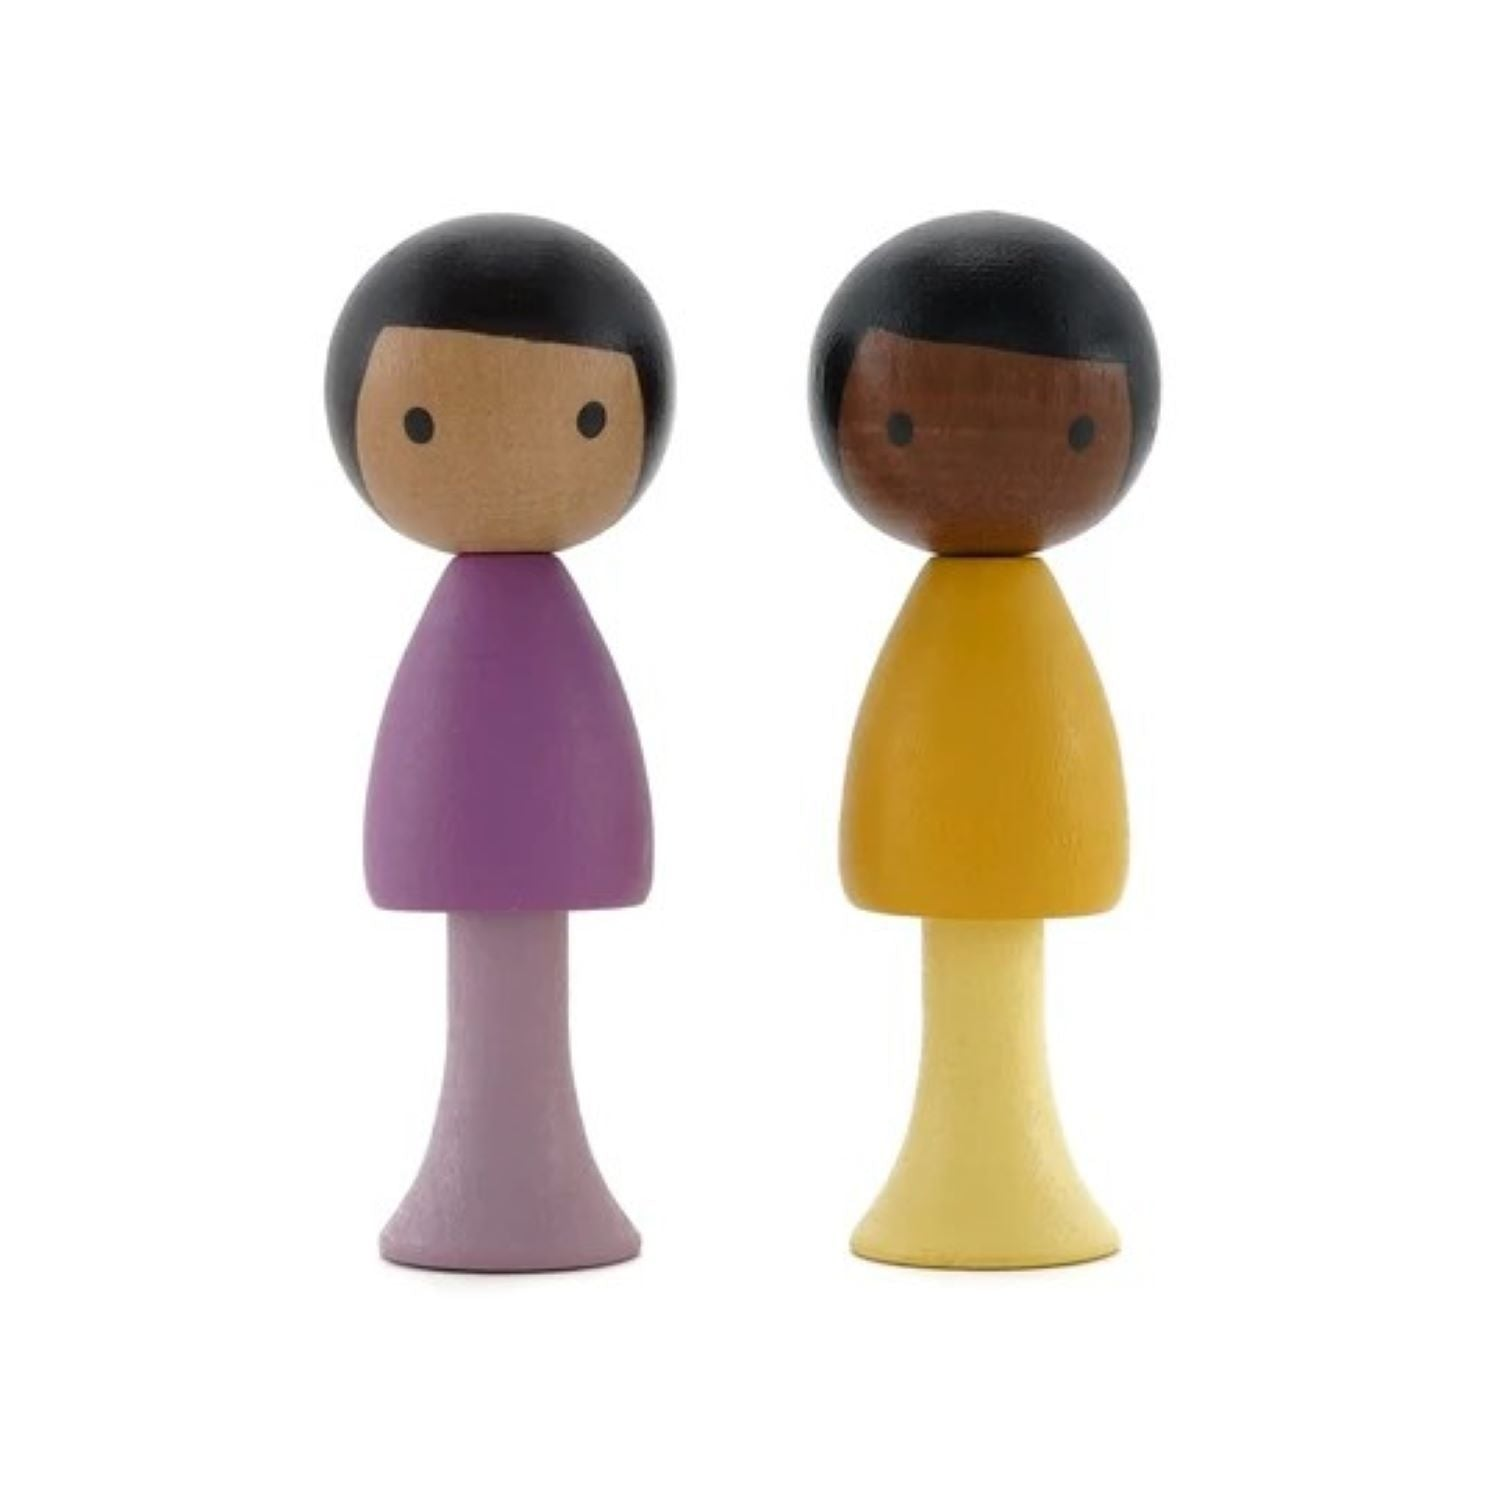 Clicques - Pablo and Leo Wooden Figurines